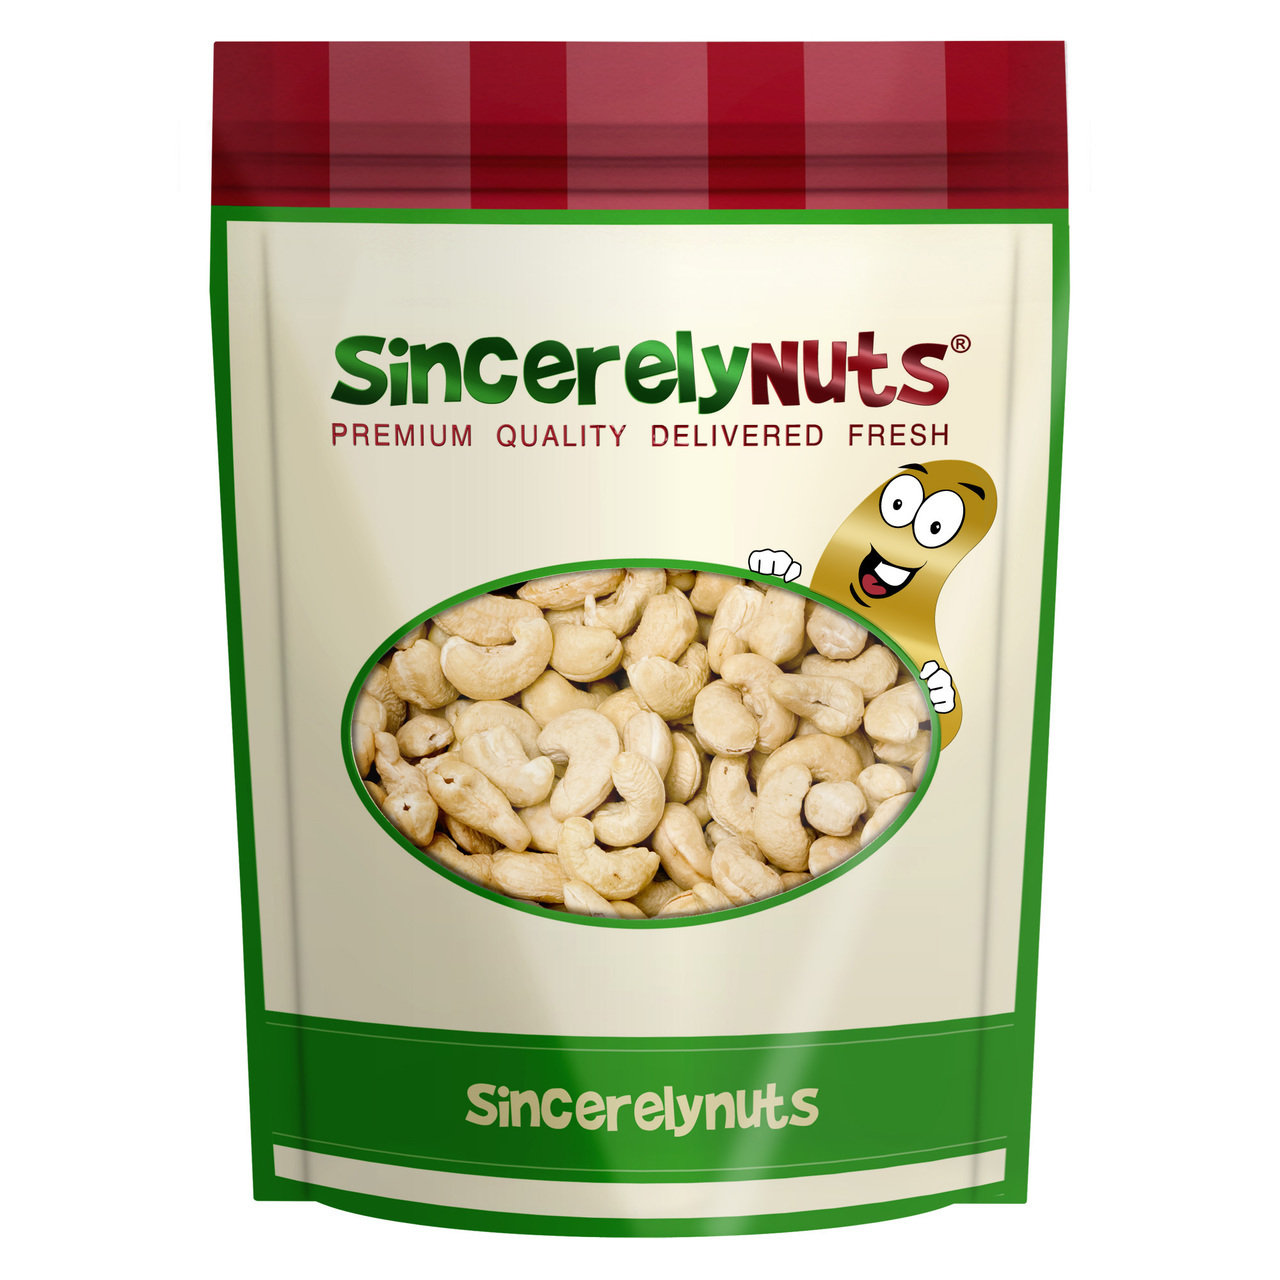 Sincerely Nuts Organic Cashews Raw Whole, 2 LB Bag